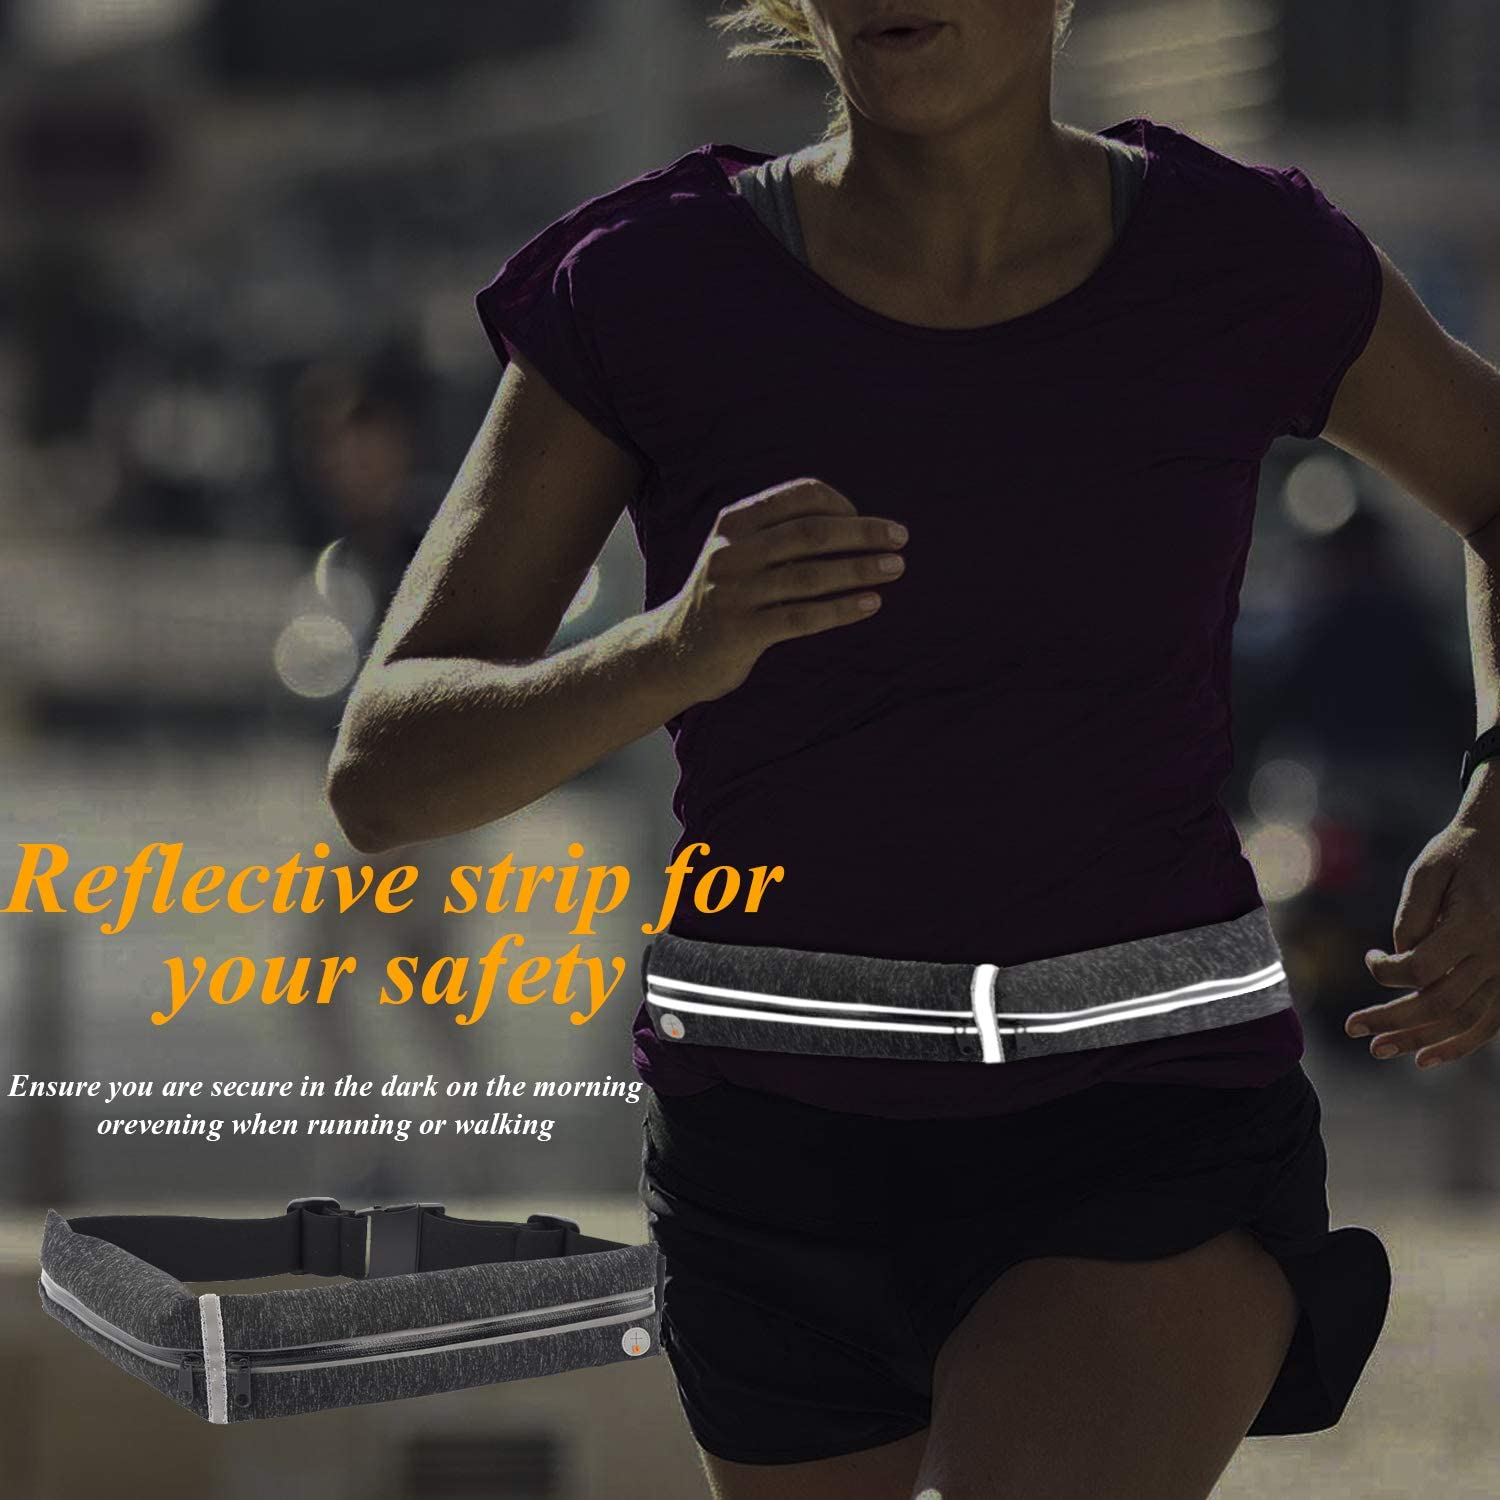 maxtop Running Belt for Phone Fanny Pack for Women Men Runners Belt Reflective Adjustable Running Pouch Waist Pack for Fitness Workout